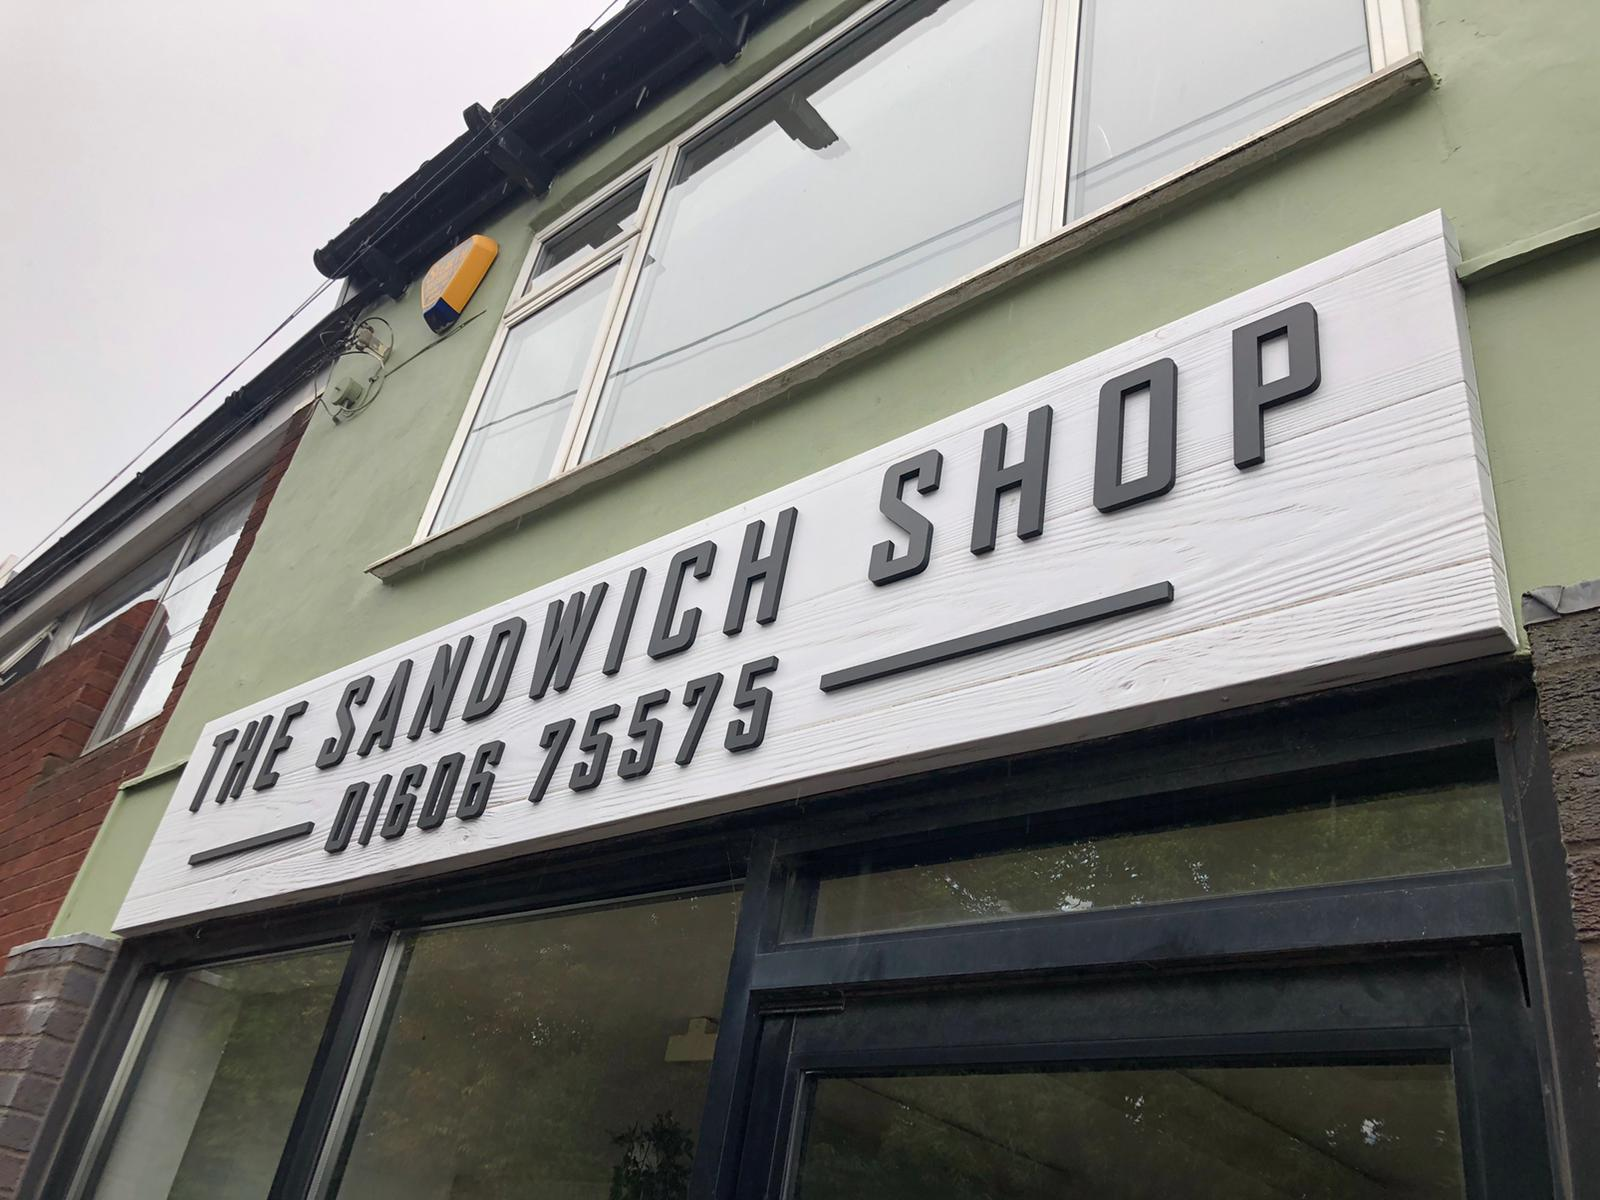 The Sandwich Shop Close Up